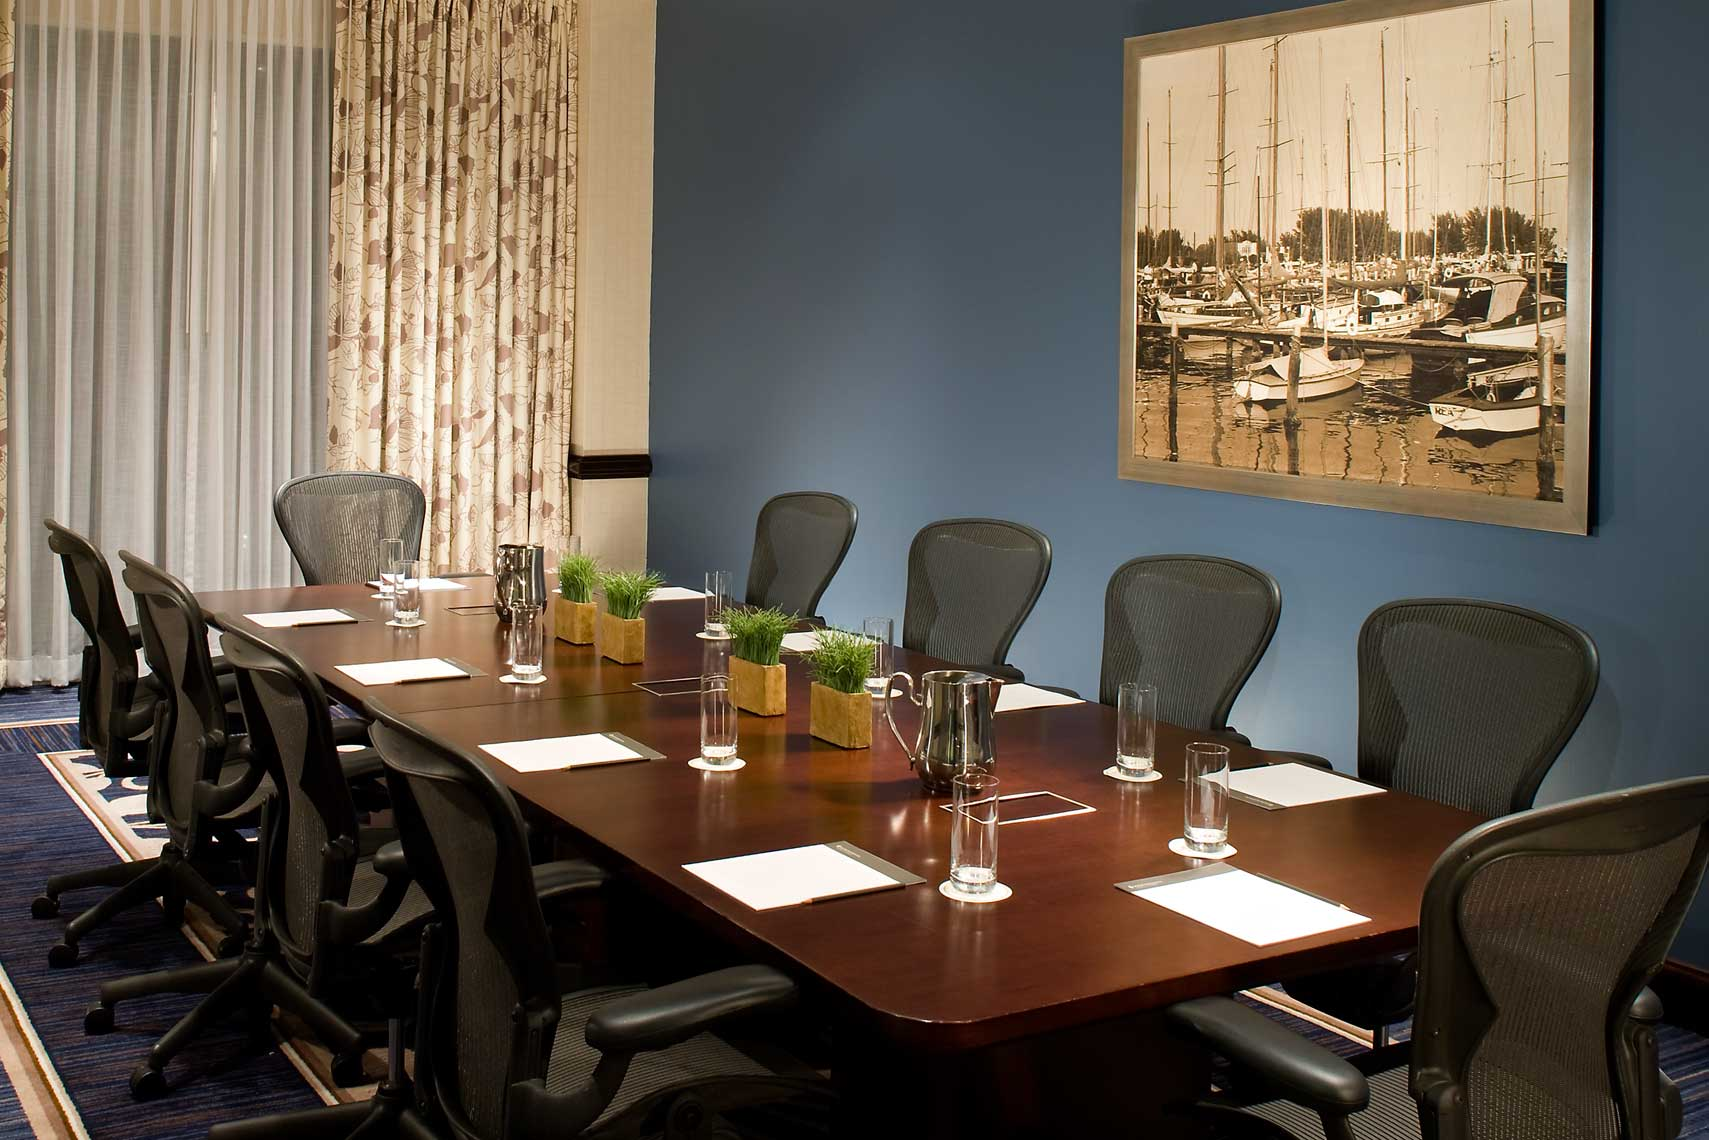 A view of an intimate and welcoming meeting room at the InterContinental West Shore